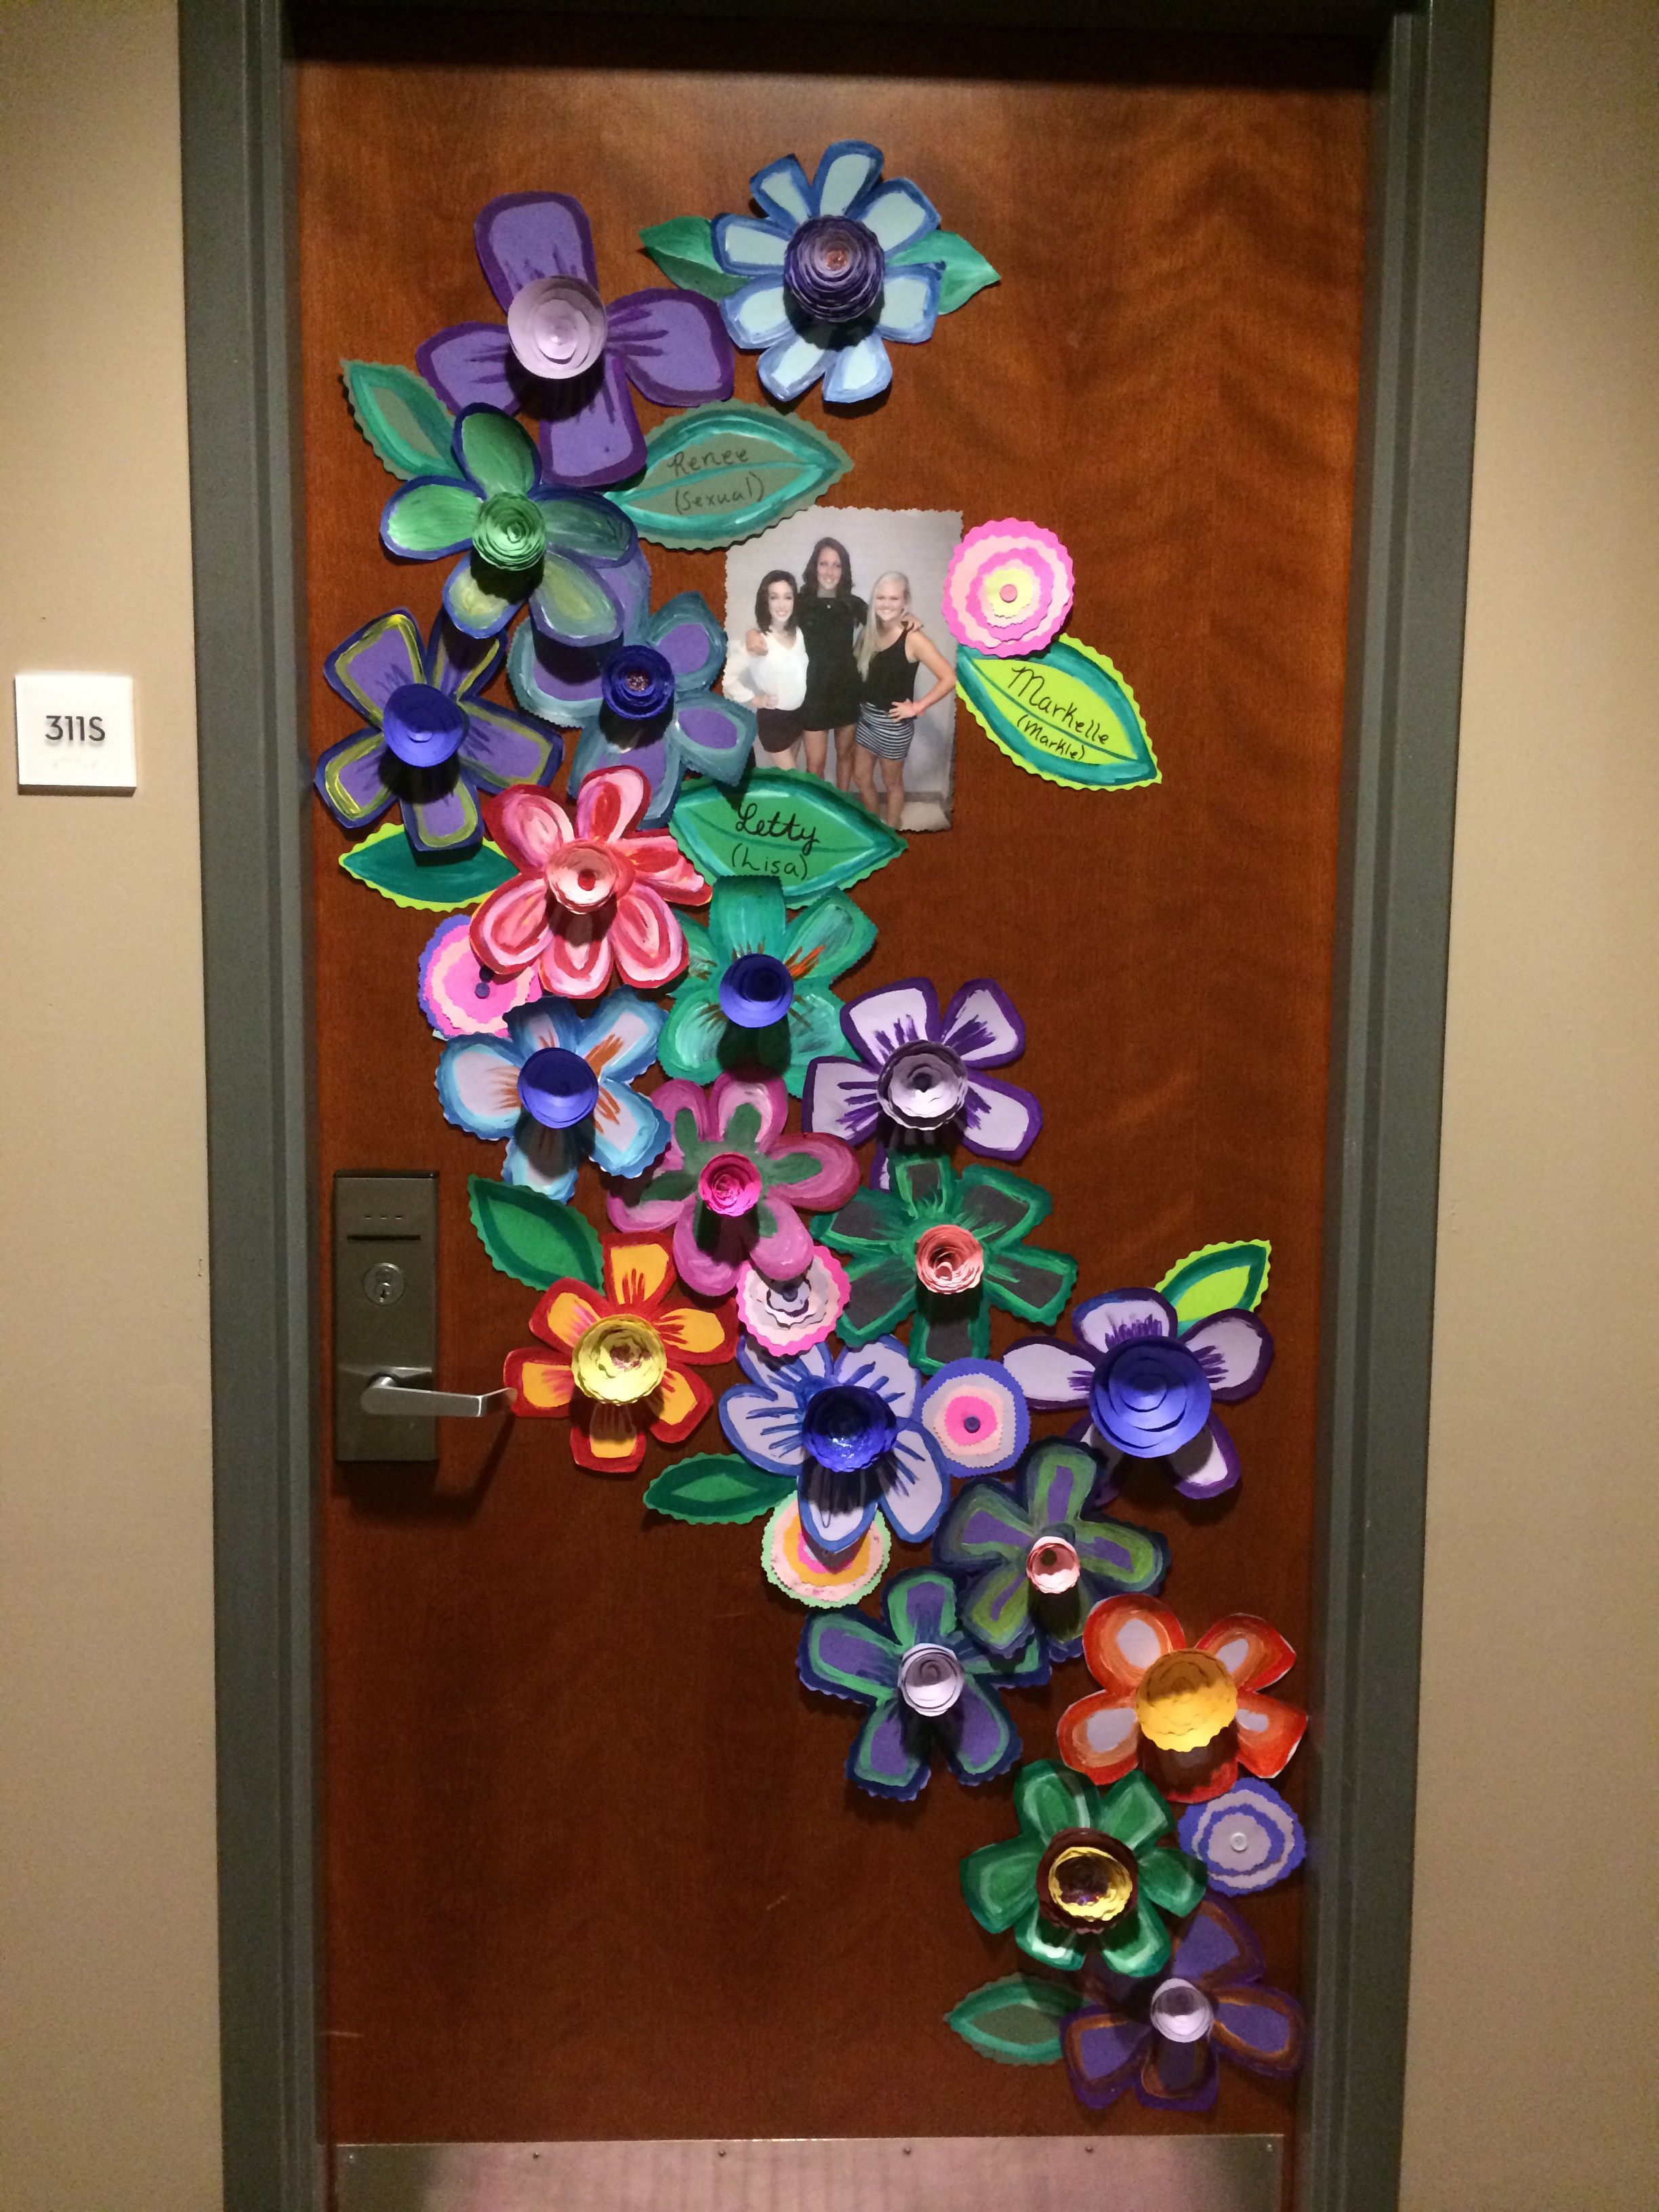 This Door Decoration Is Awesome You Can Get Creative And Make A Colorful Collage For Your Room At Uwo